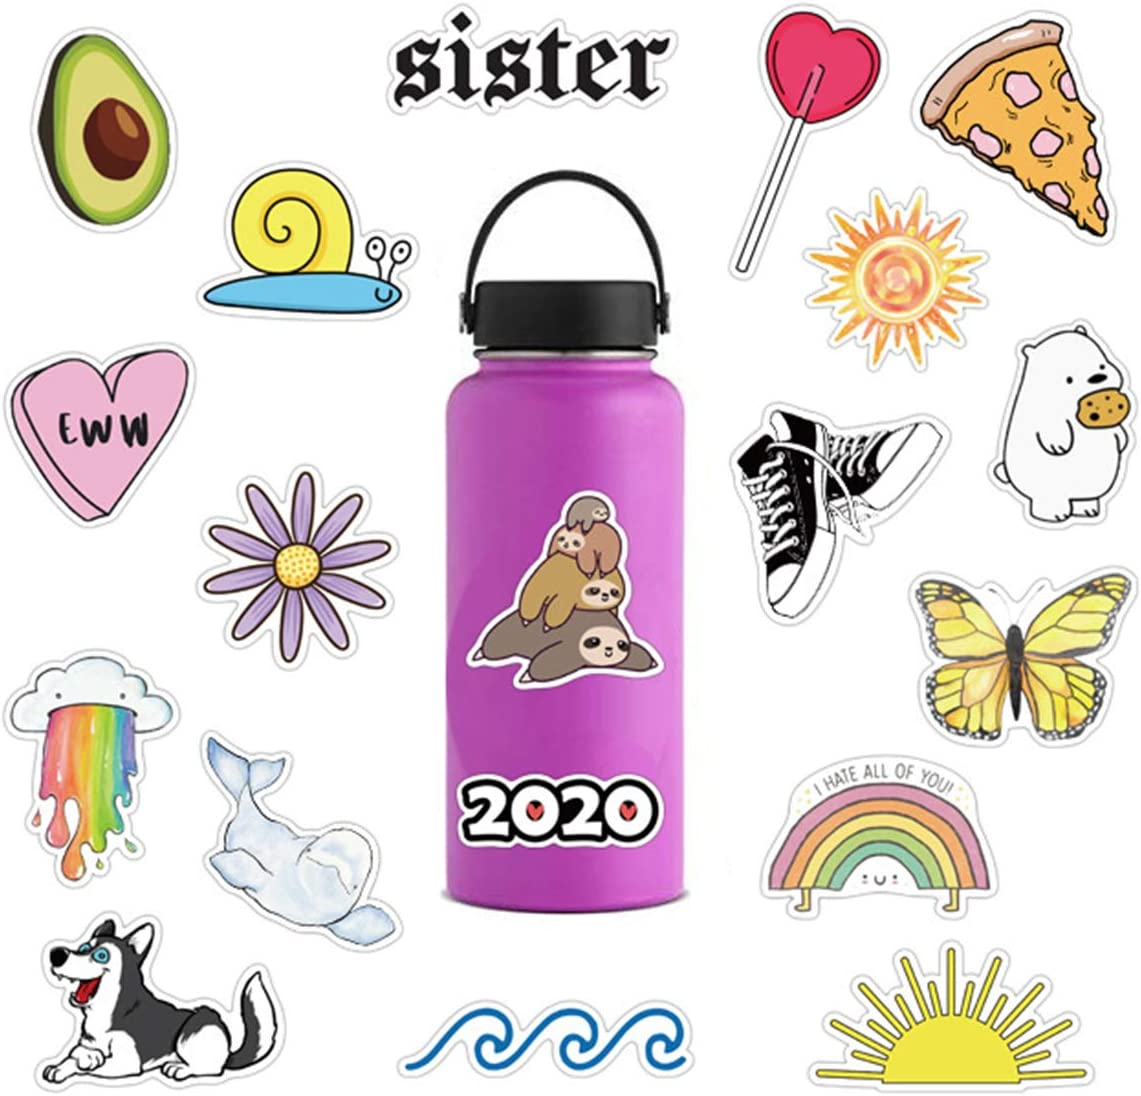 75pcs Fresh Vine Stickers Scrapbook Stickers for Laptops Water Bottles Toys and Gifts Cars Stickers Cartoon Anime Aesthetic Sticker Pack for Teens Girls Women Fresh Vine